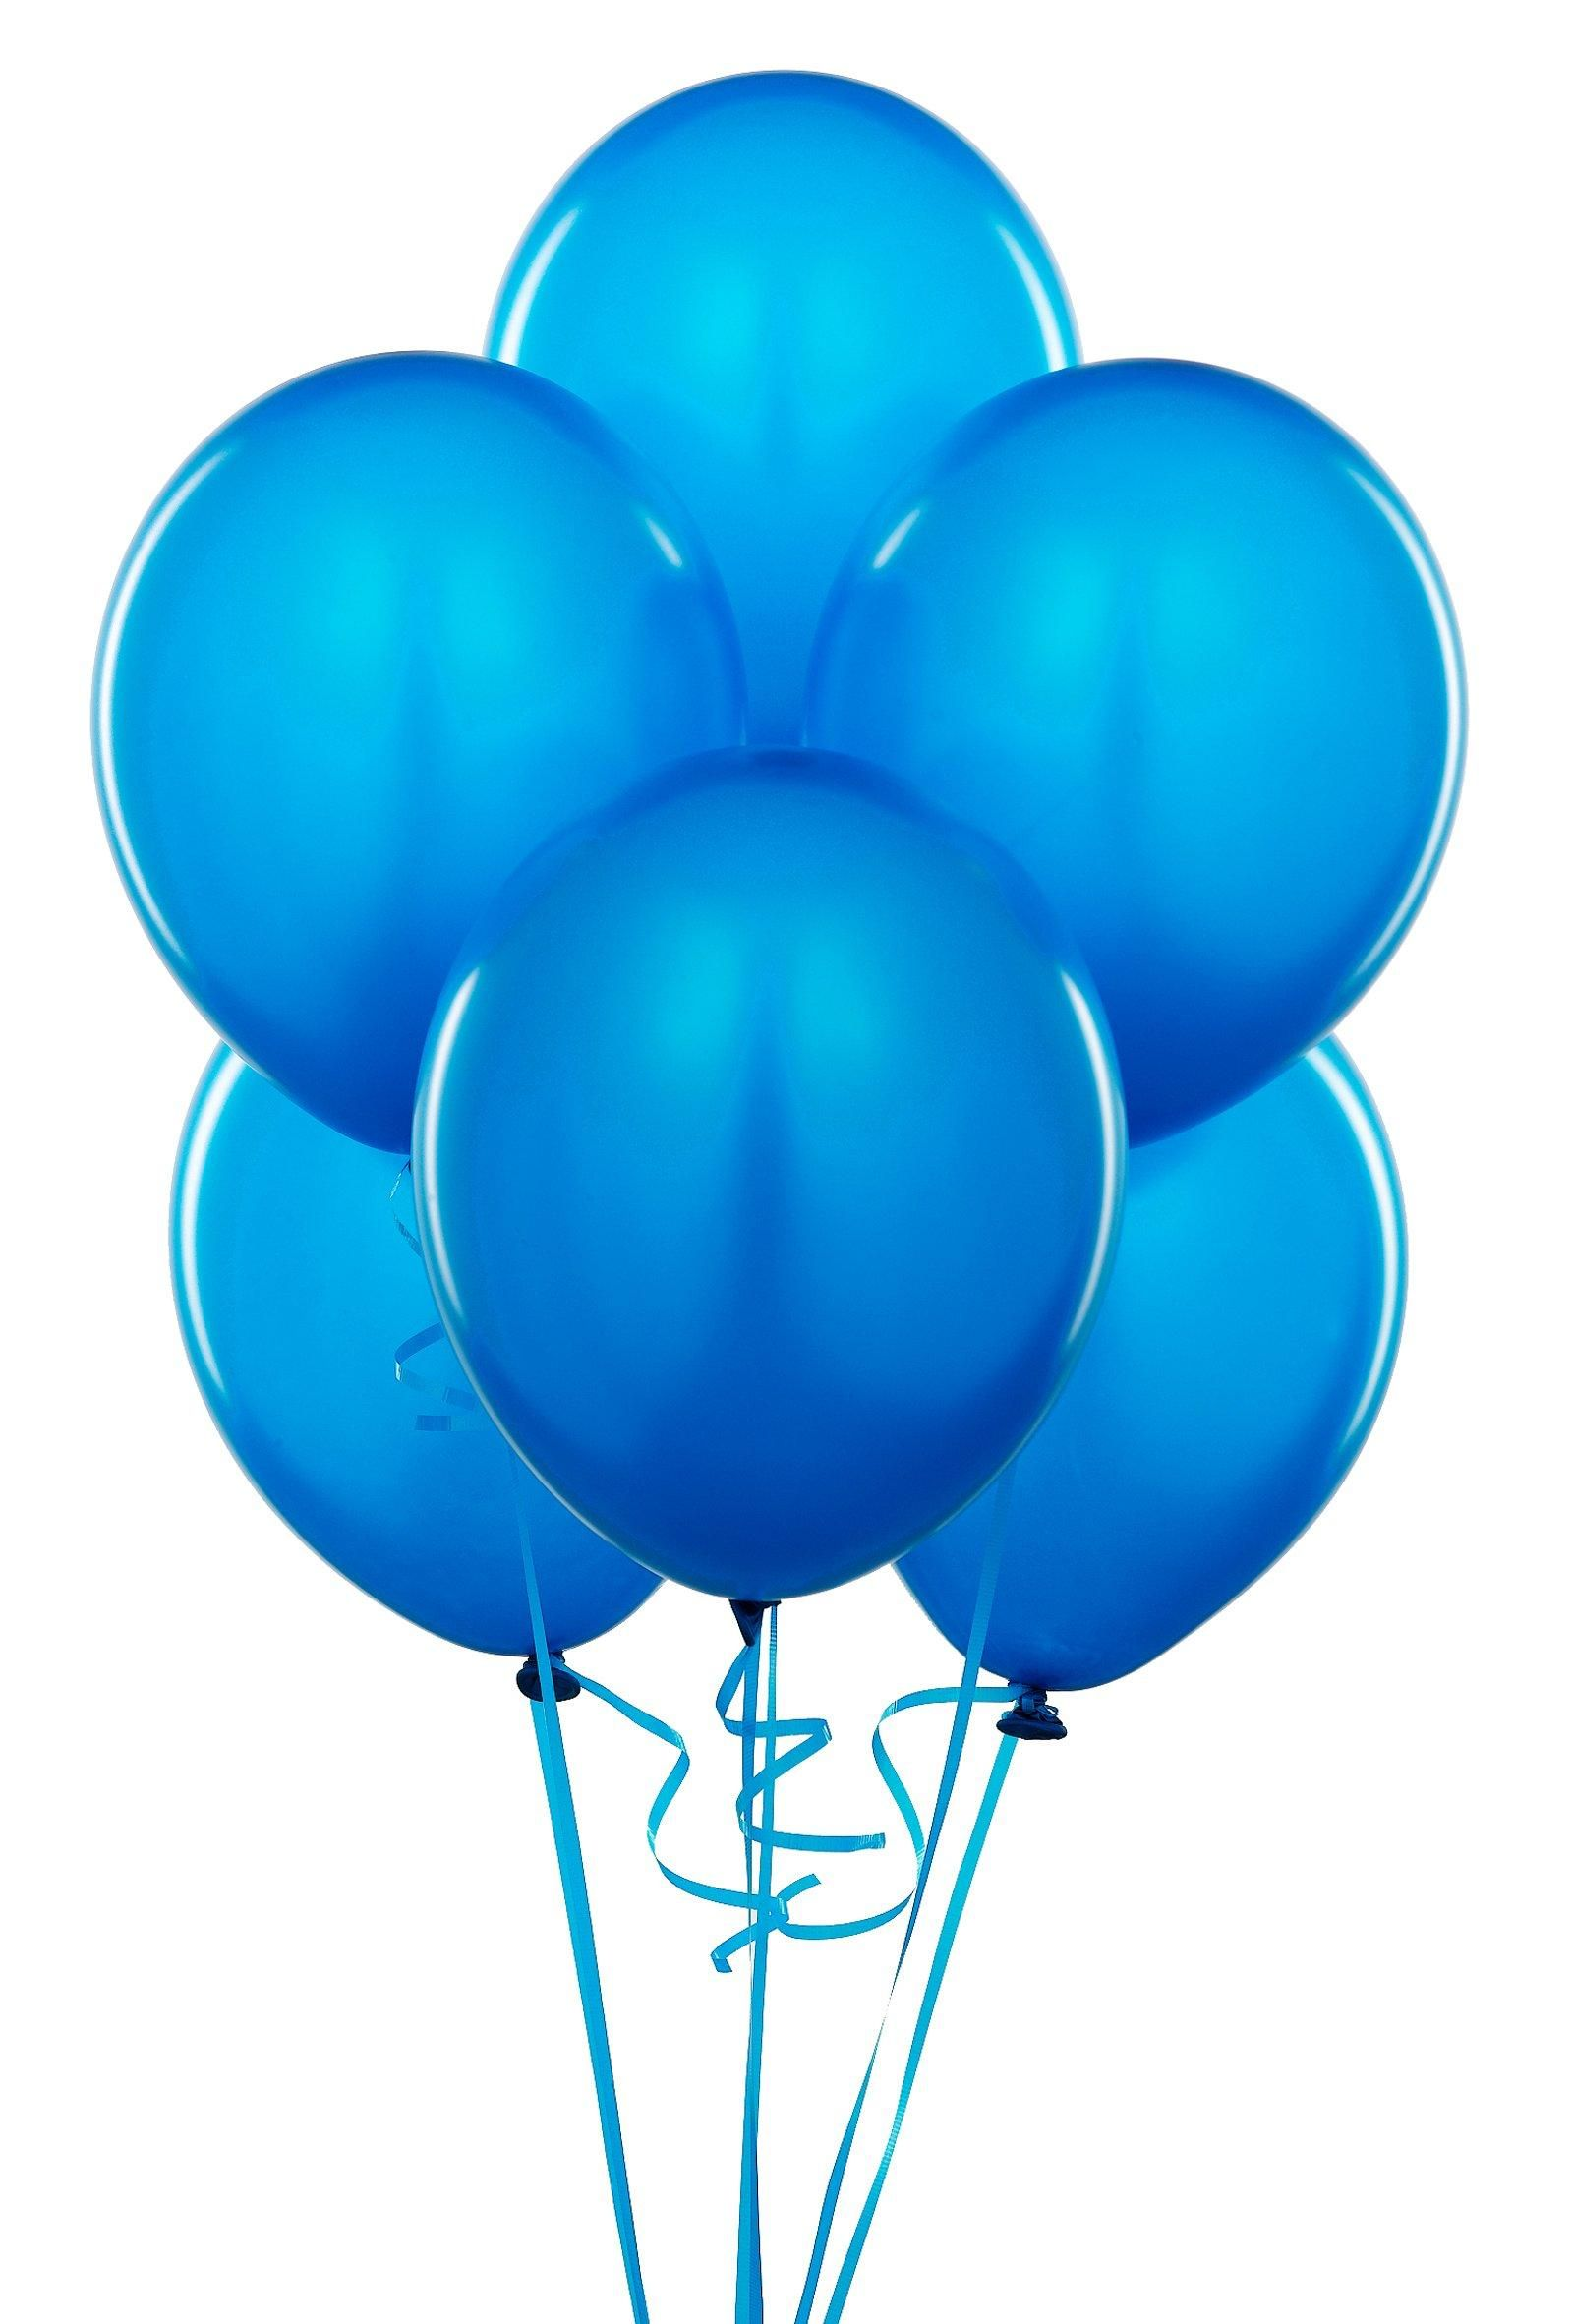 6 Turquoise Large Latex Balloons Wedding Party! Birthday